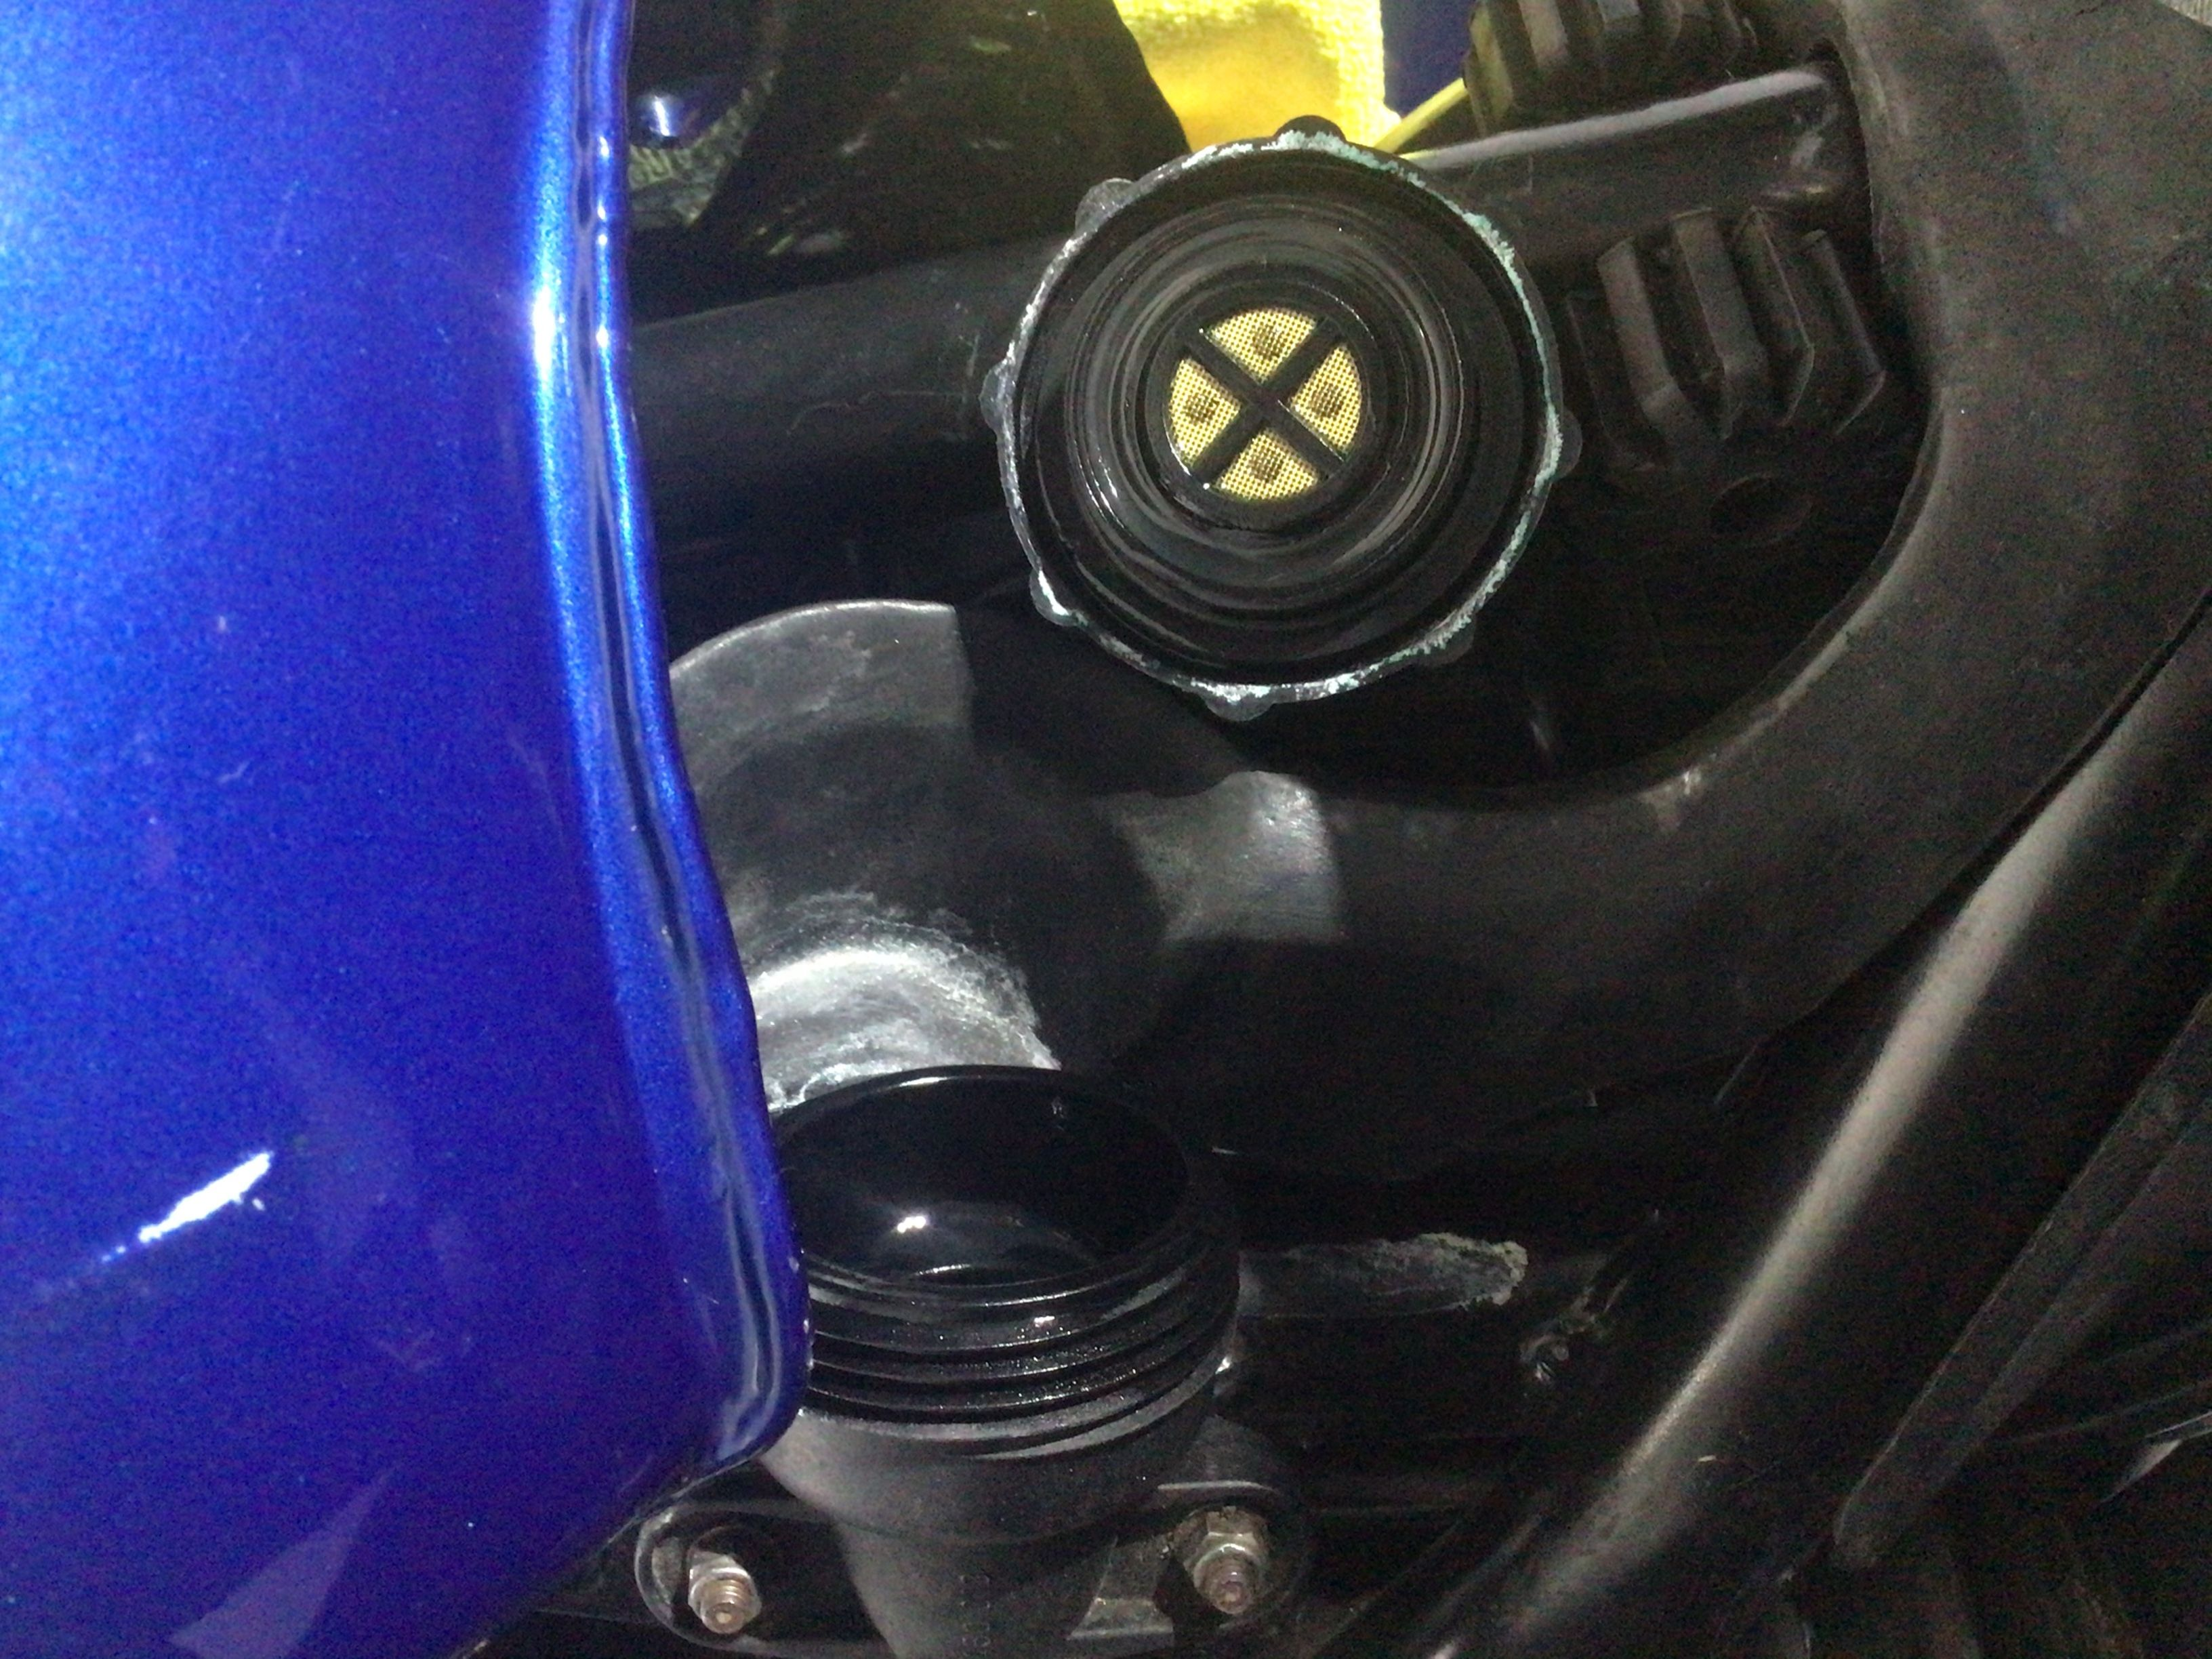 1985 K100RS coolant leaking from under filler neck cap. MWUrcL